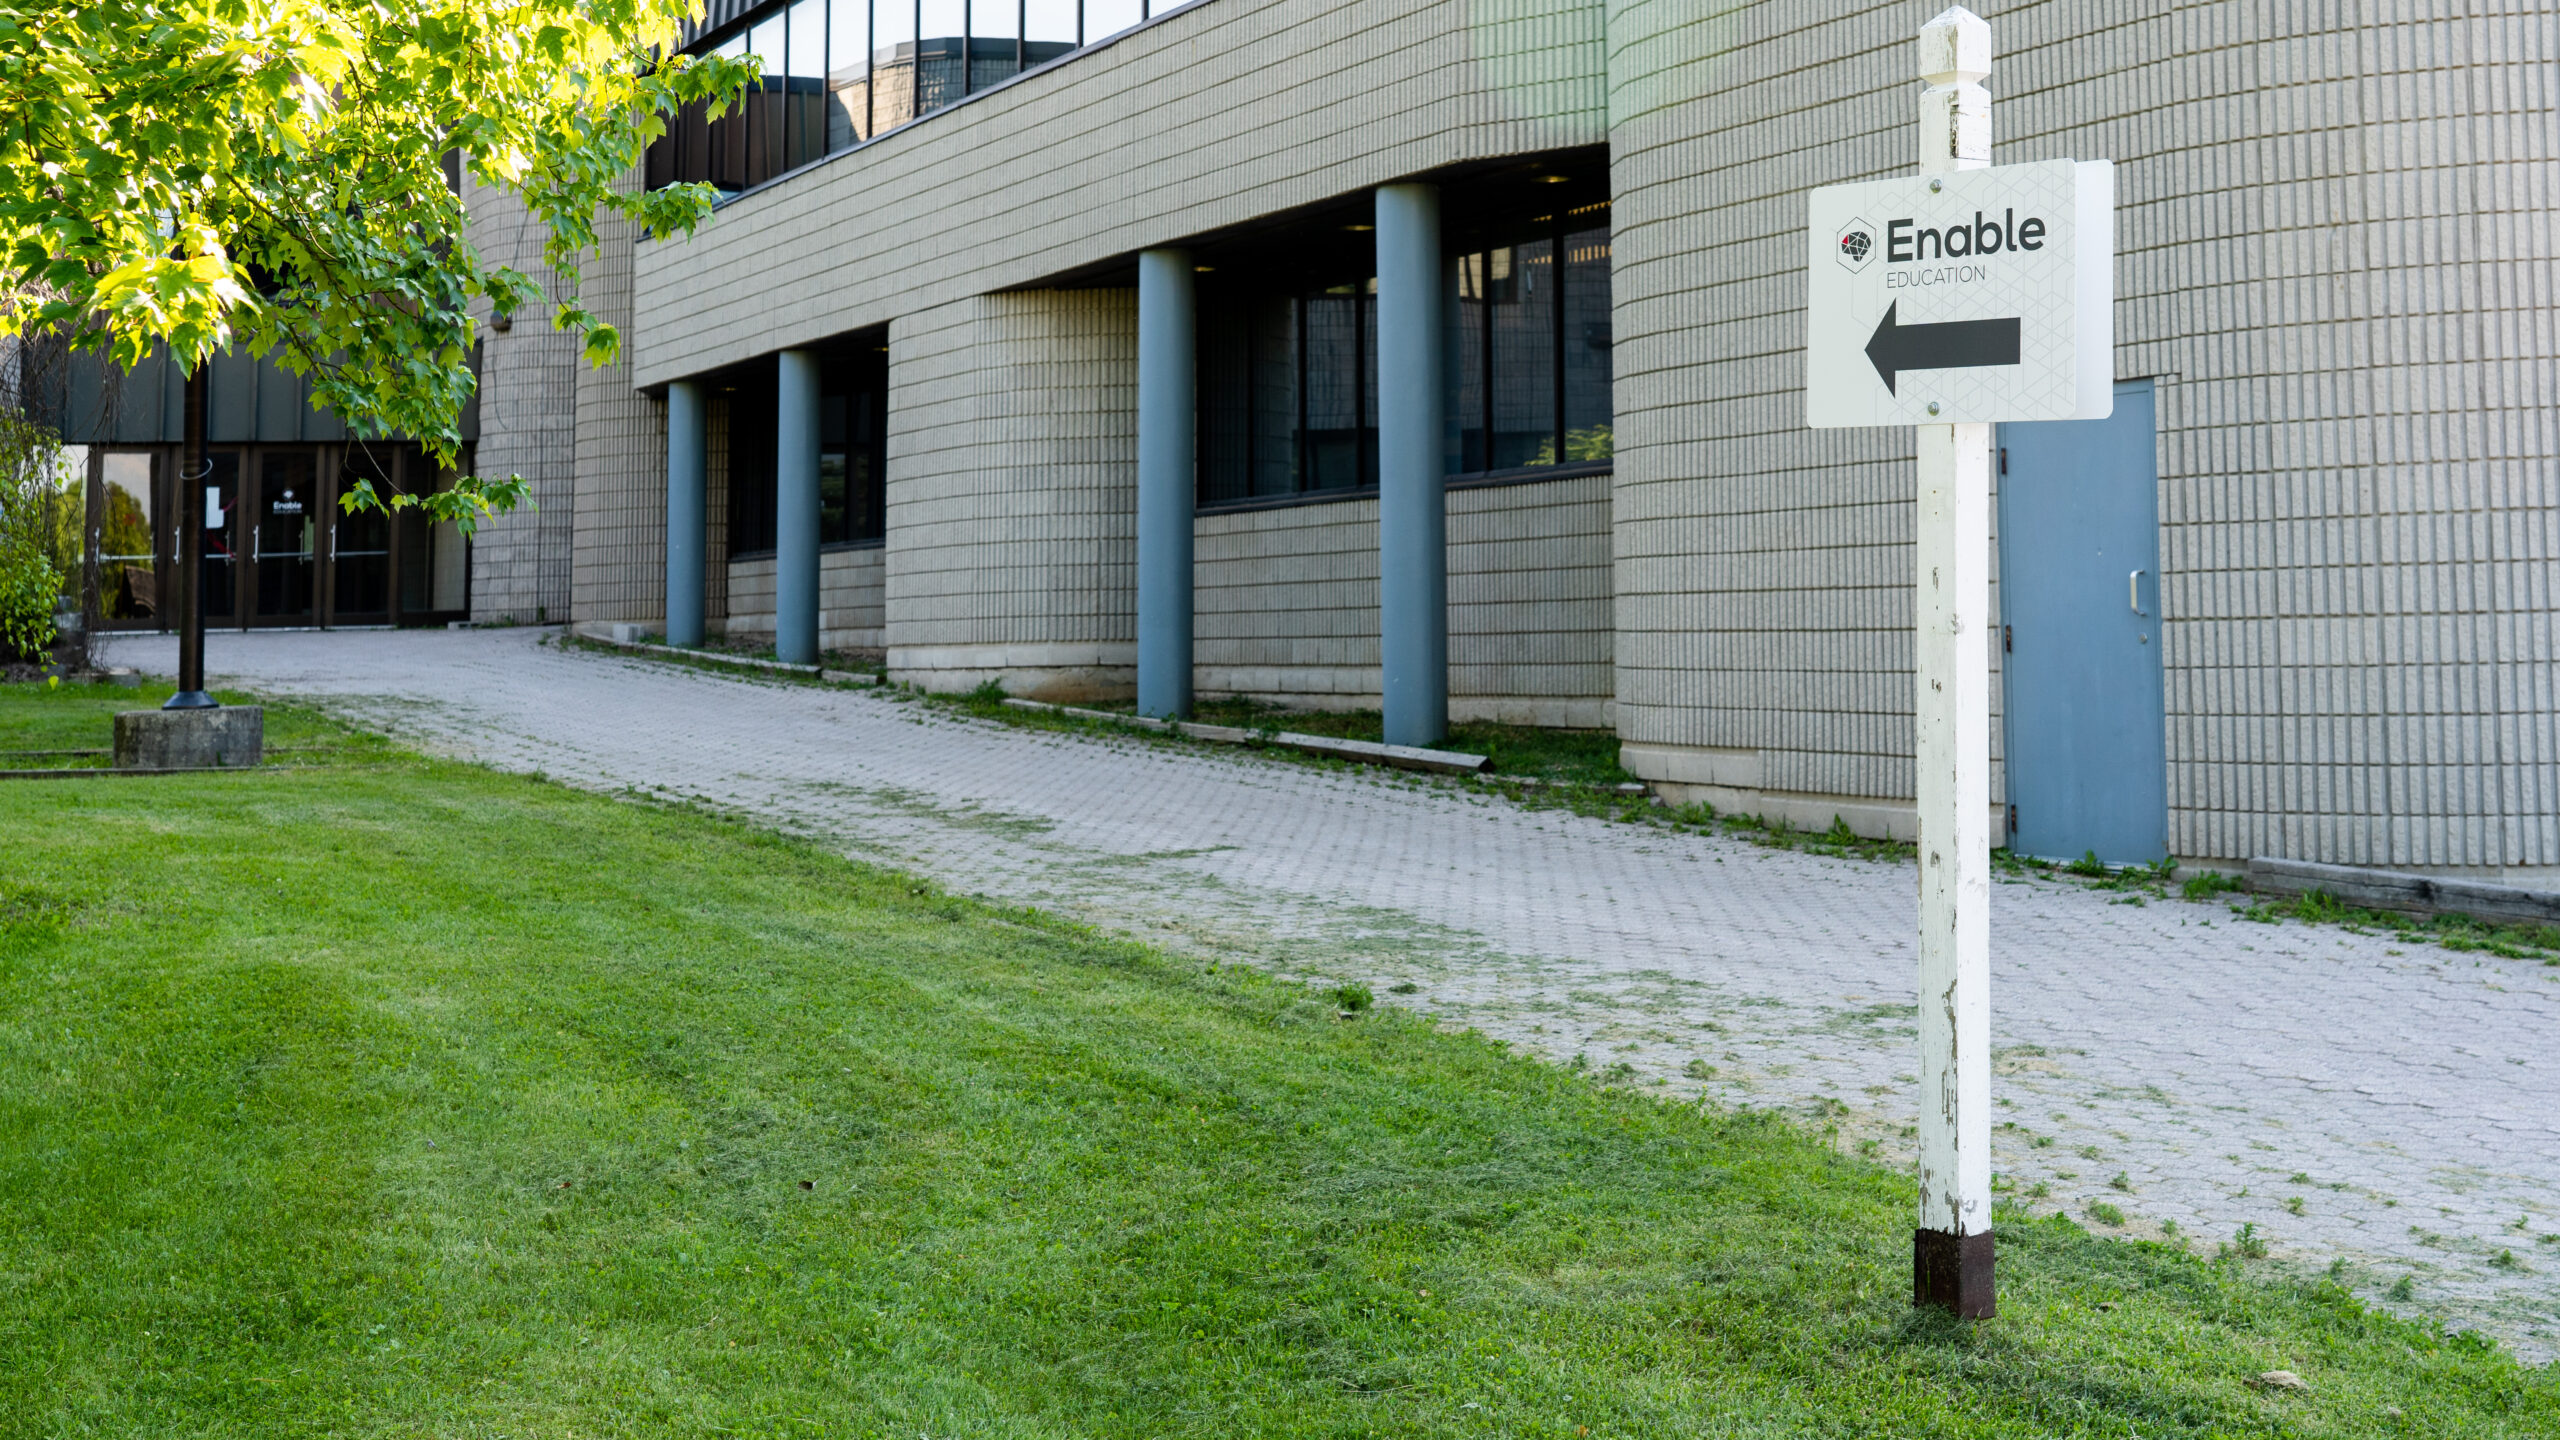 Enable Education is located on the second floor inside the grey building.